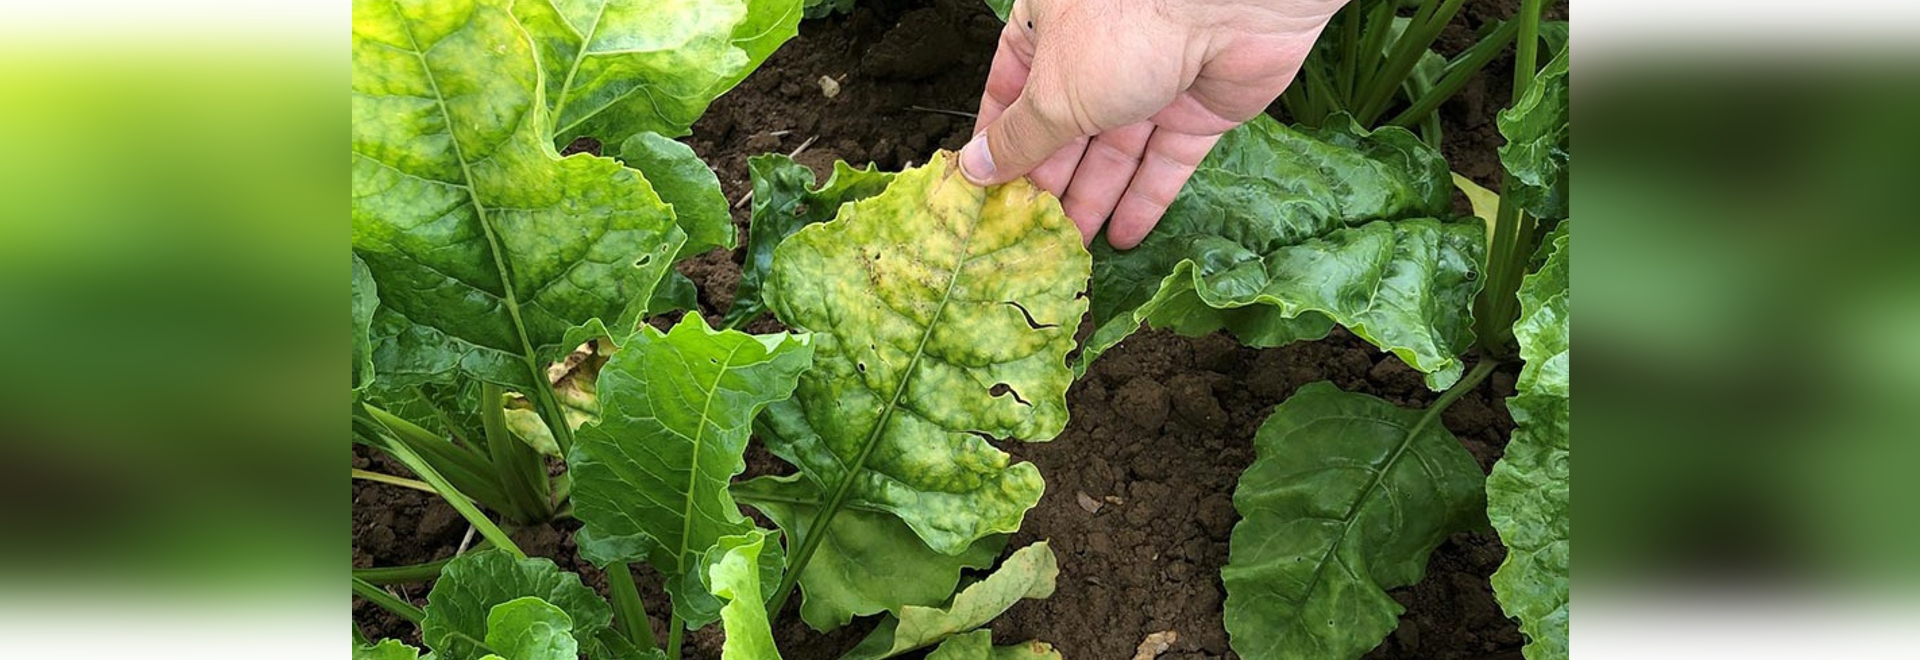 Virus yellows on sugar beet leaf